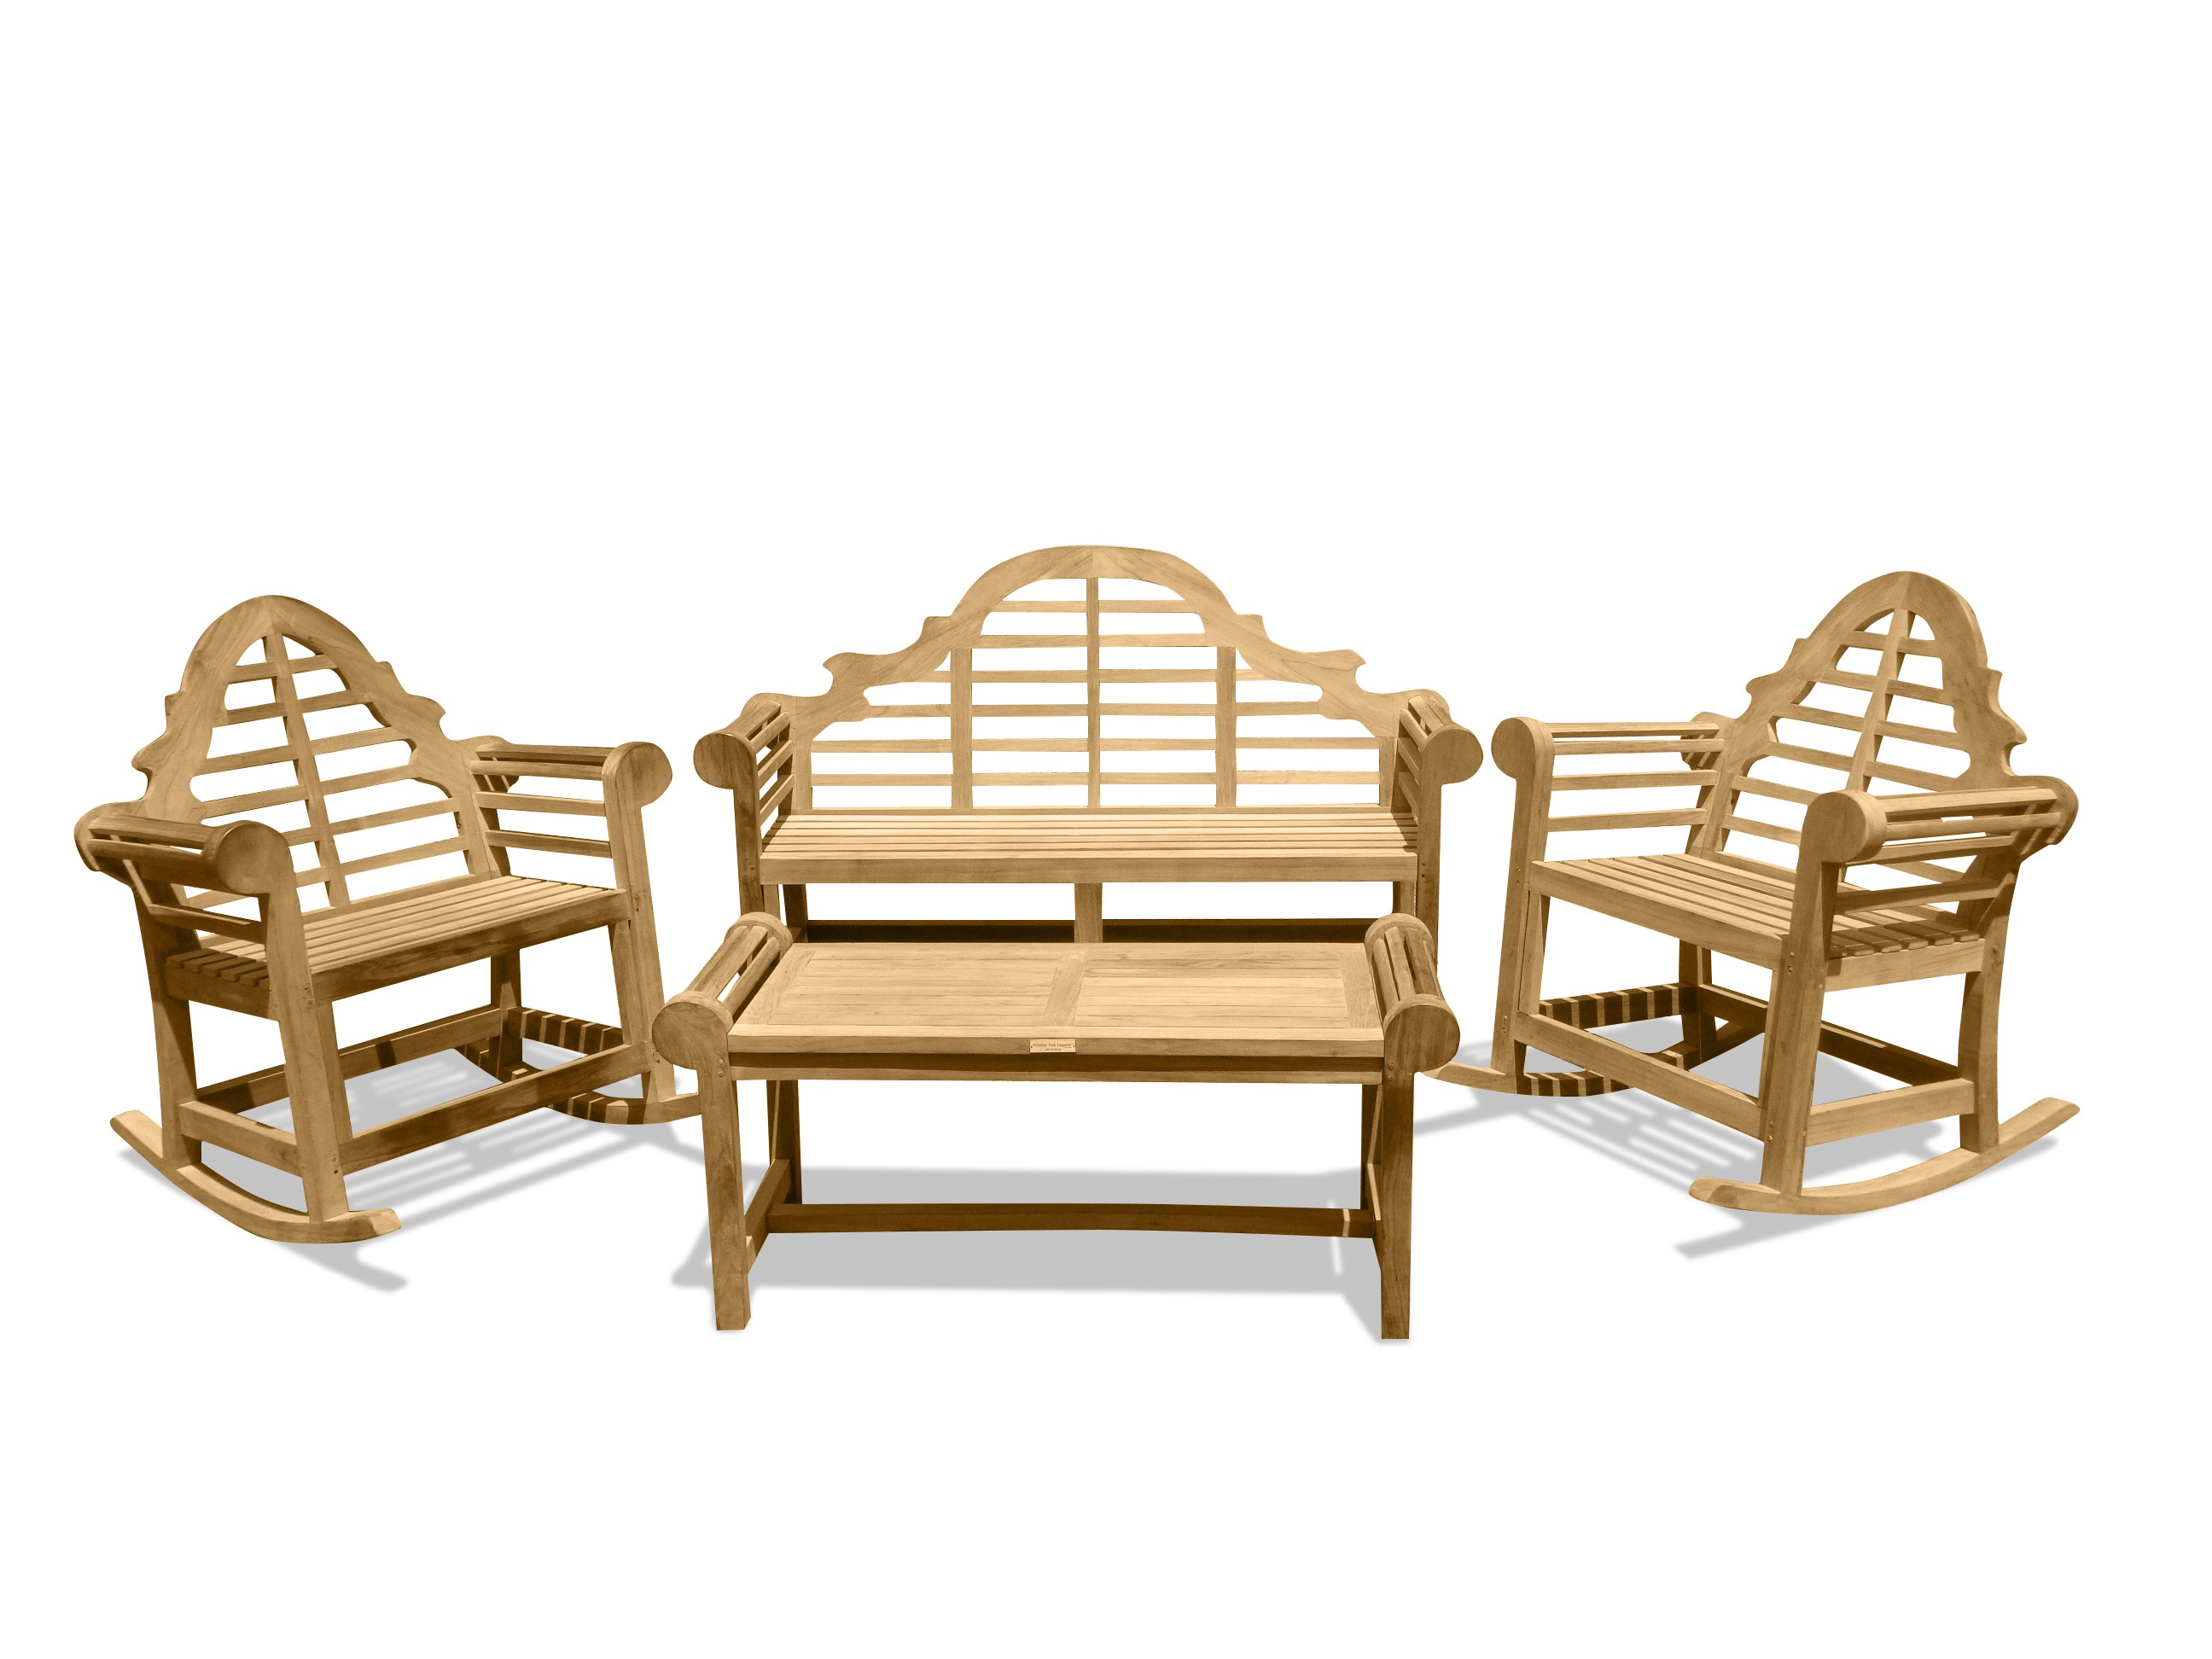 Lutyens 3-Seater Bench, 2 Single Rockers, & Table